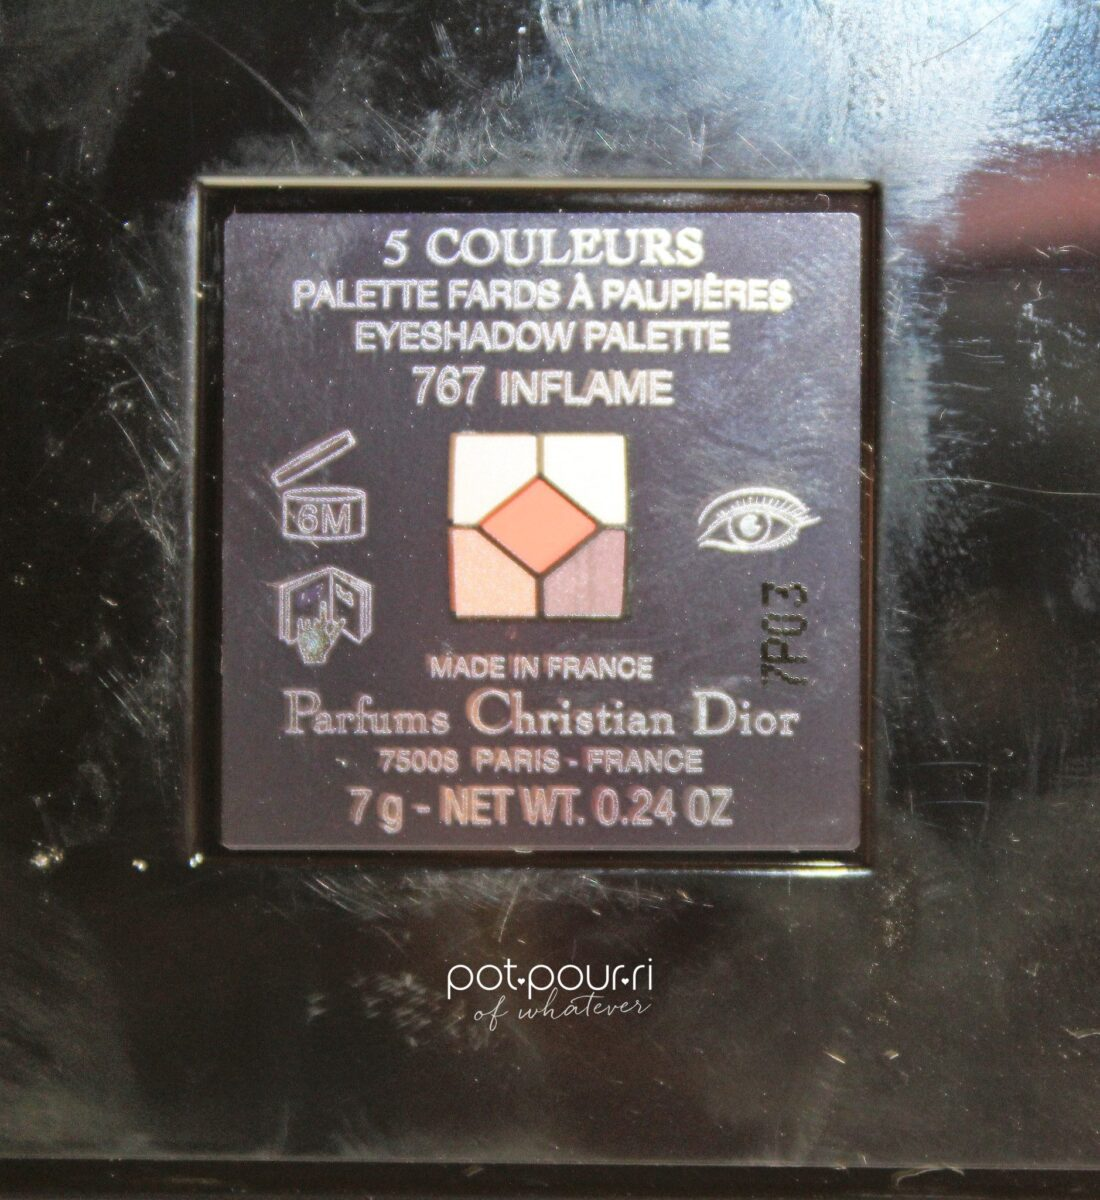 Dior-High-Fidelity-palette-inflame-767-packaging-compact-back